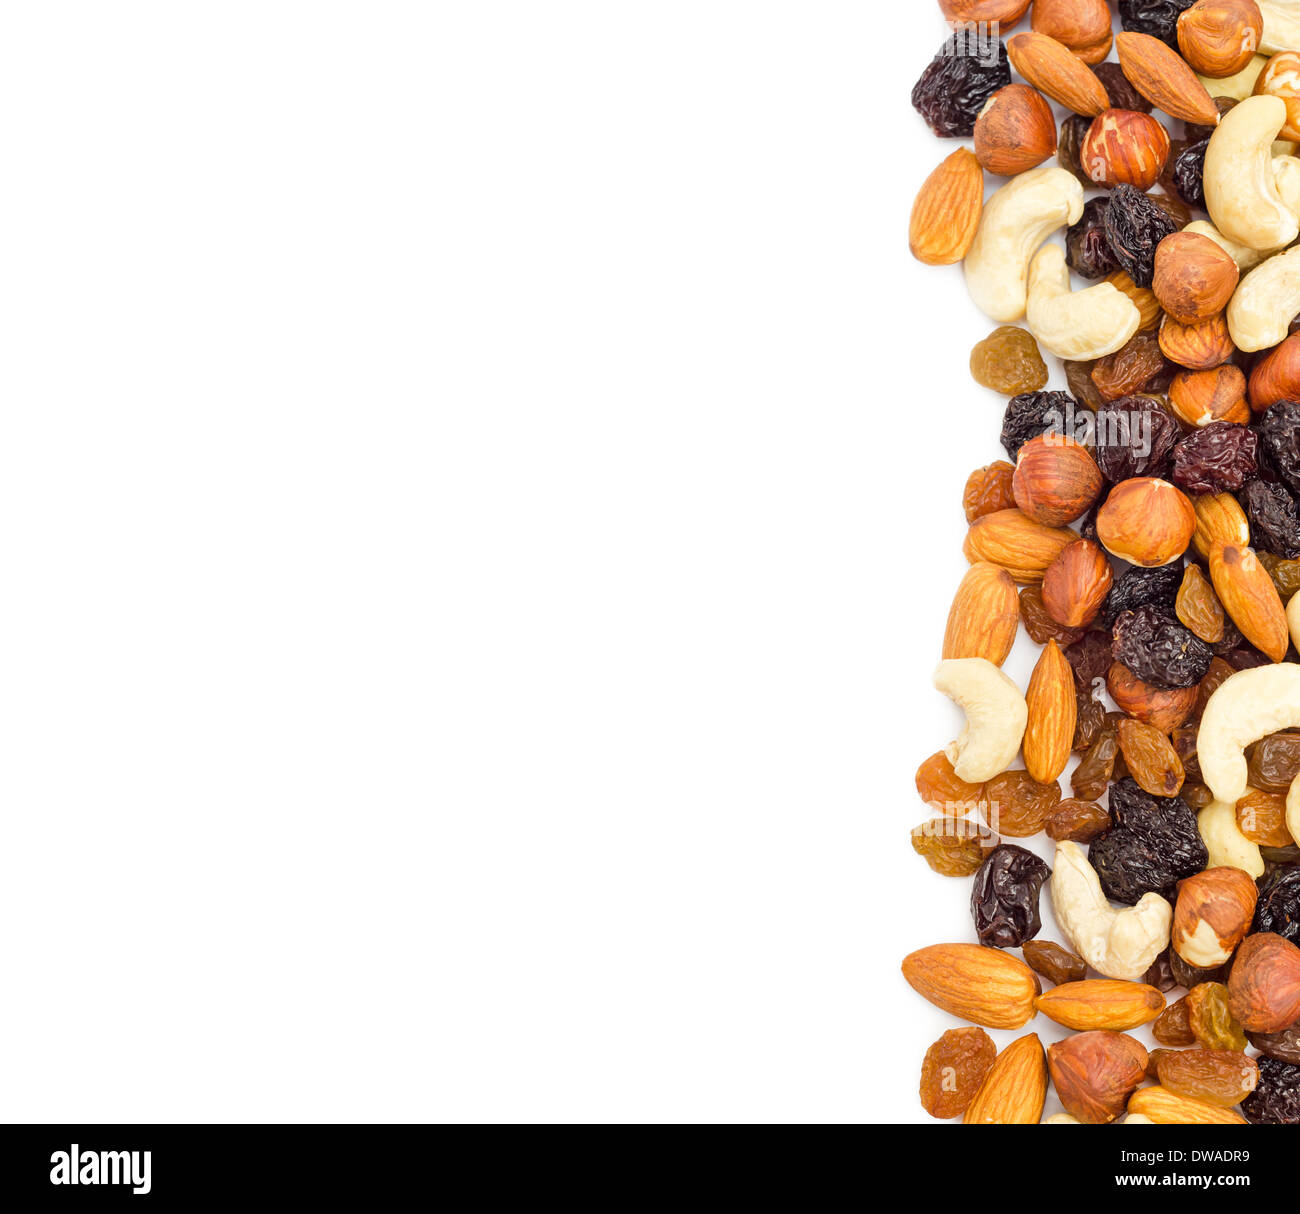 Mixed nuts and dry fruits background. Clipping path. - Stock Image